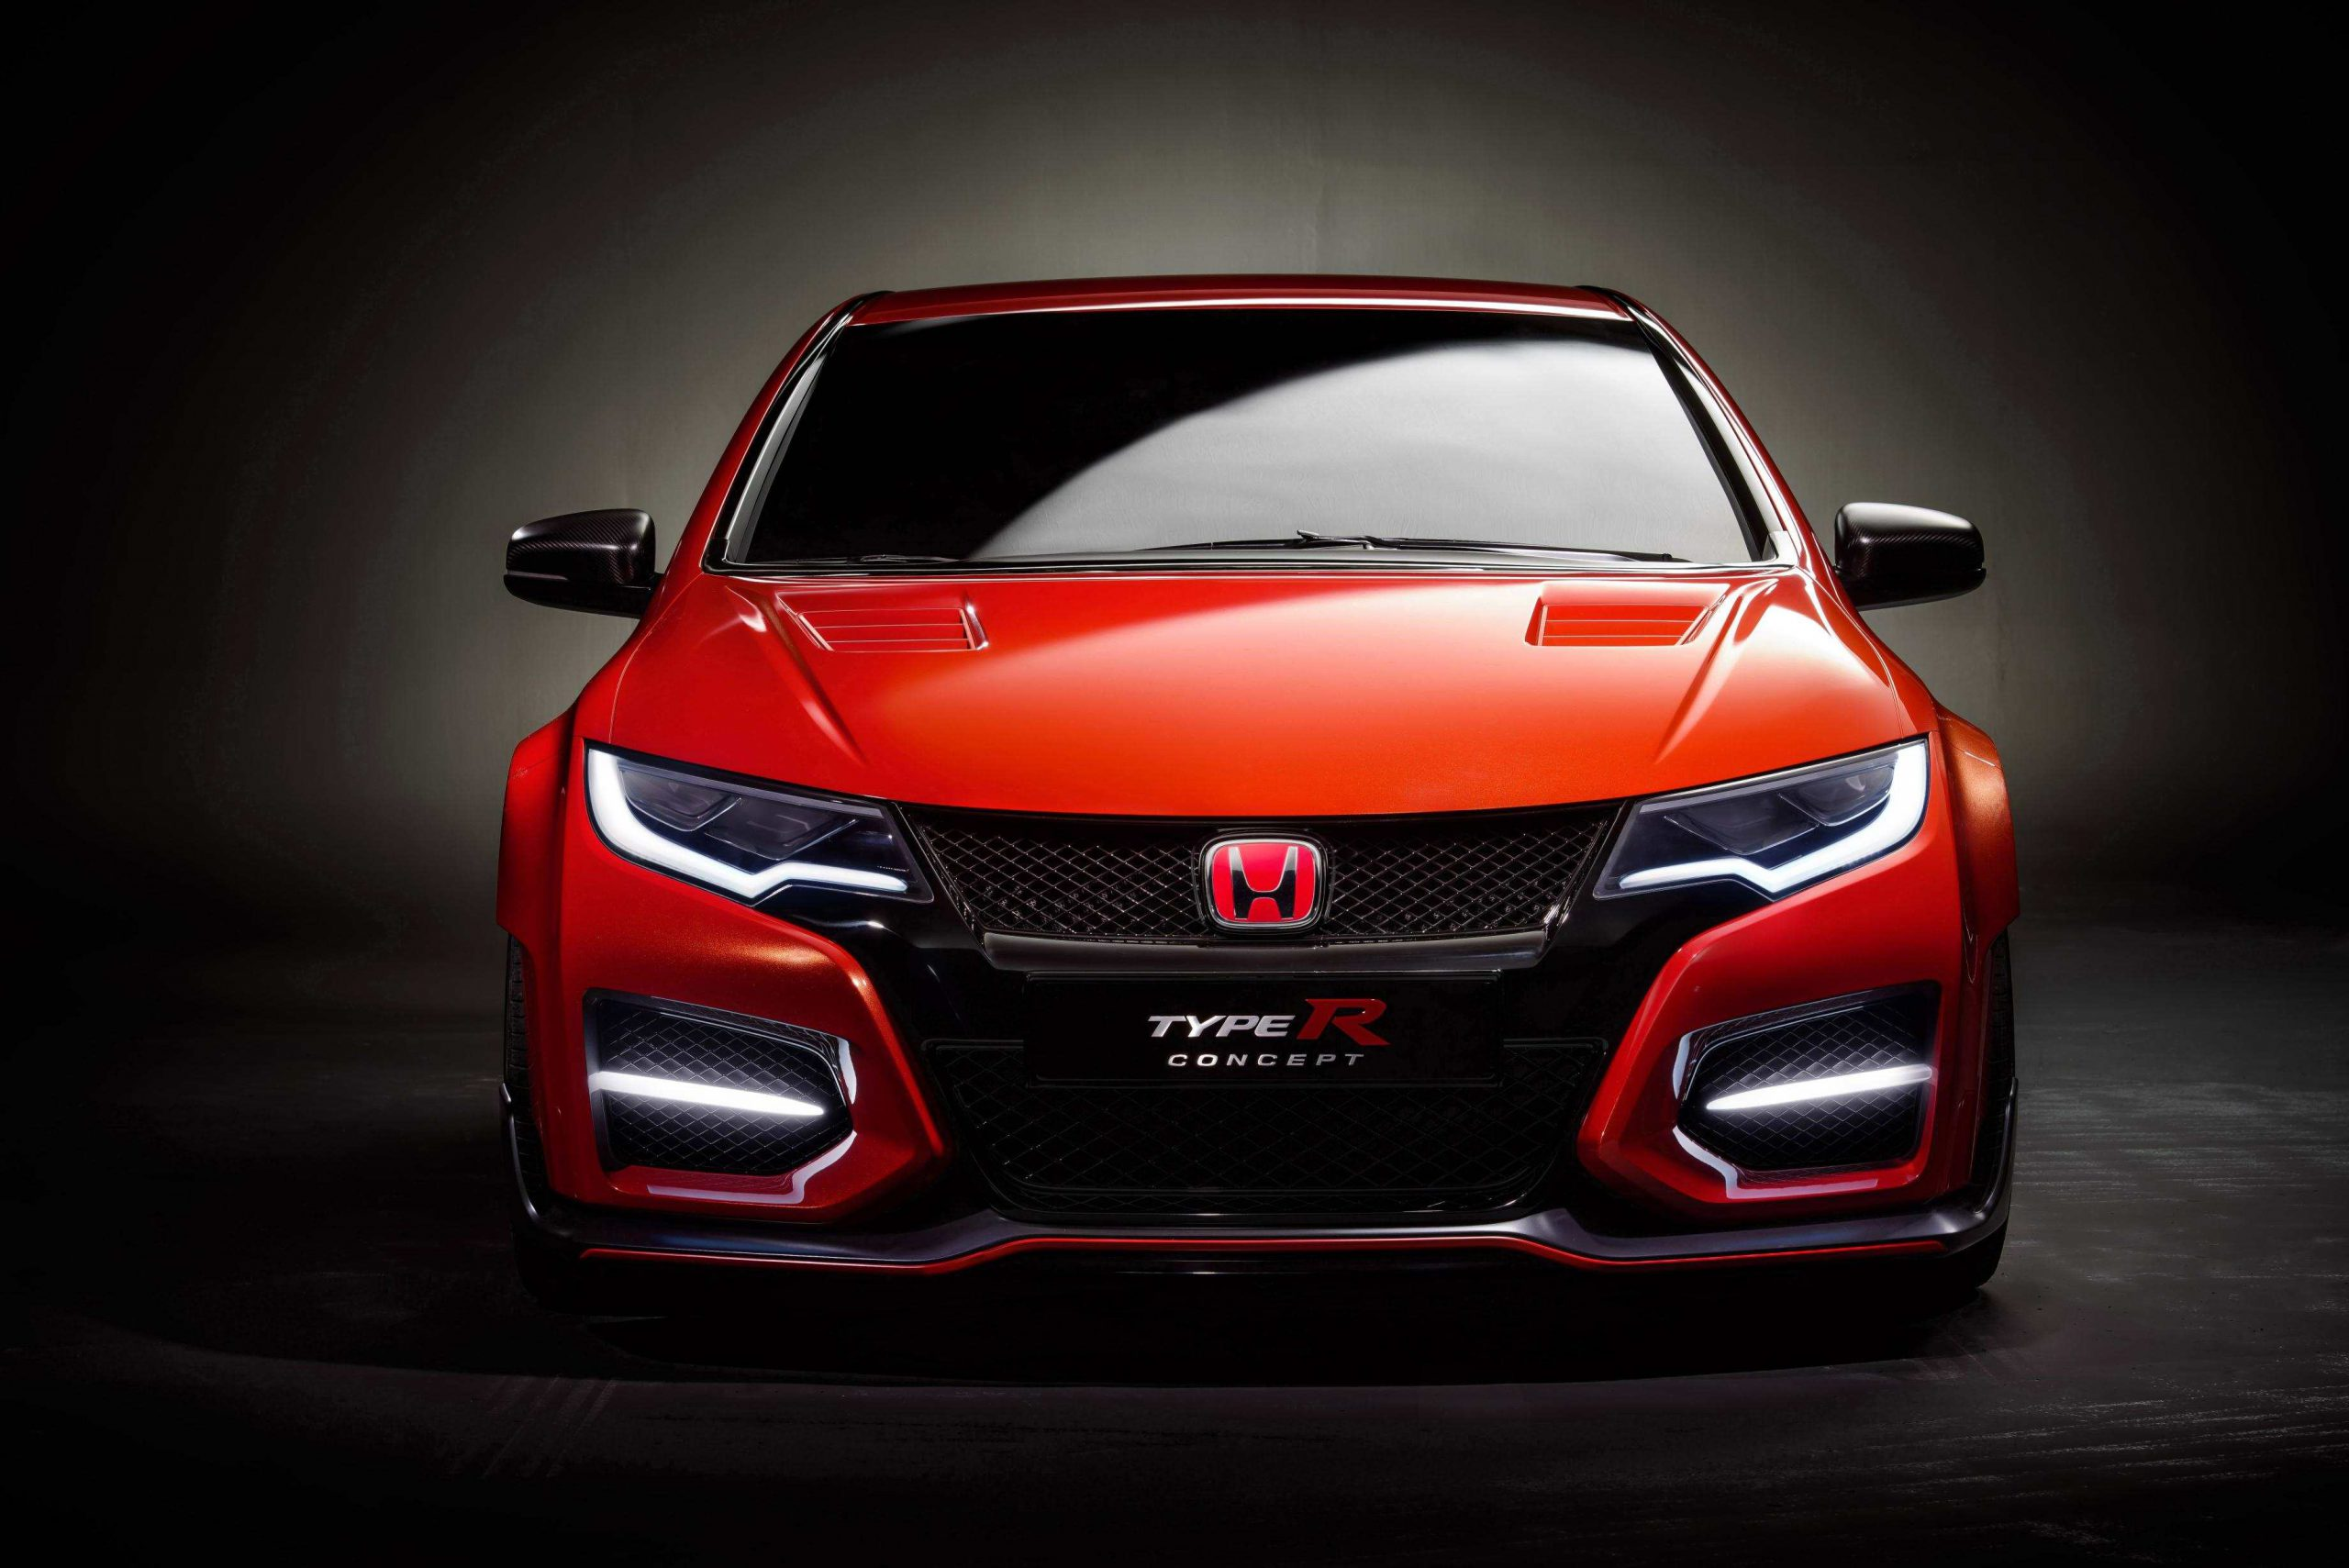 Type R Teased In 'Disruptive' Video: Latest News